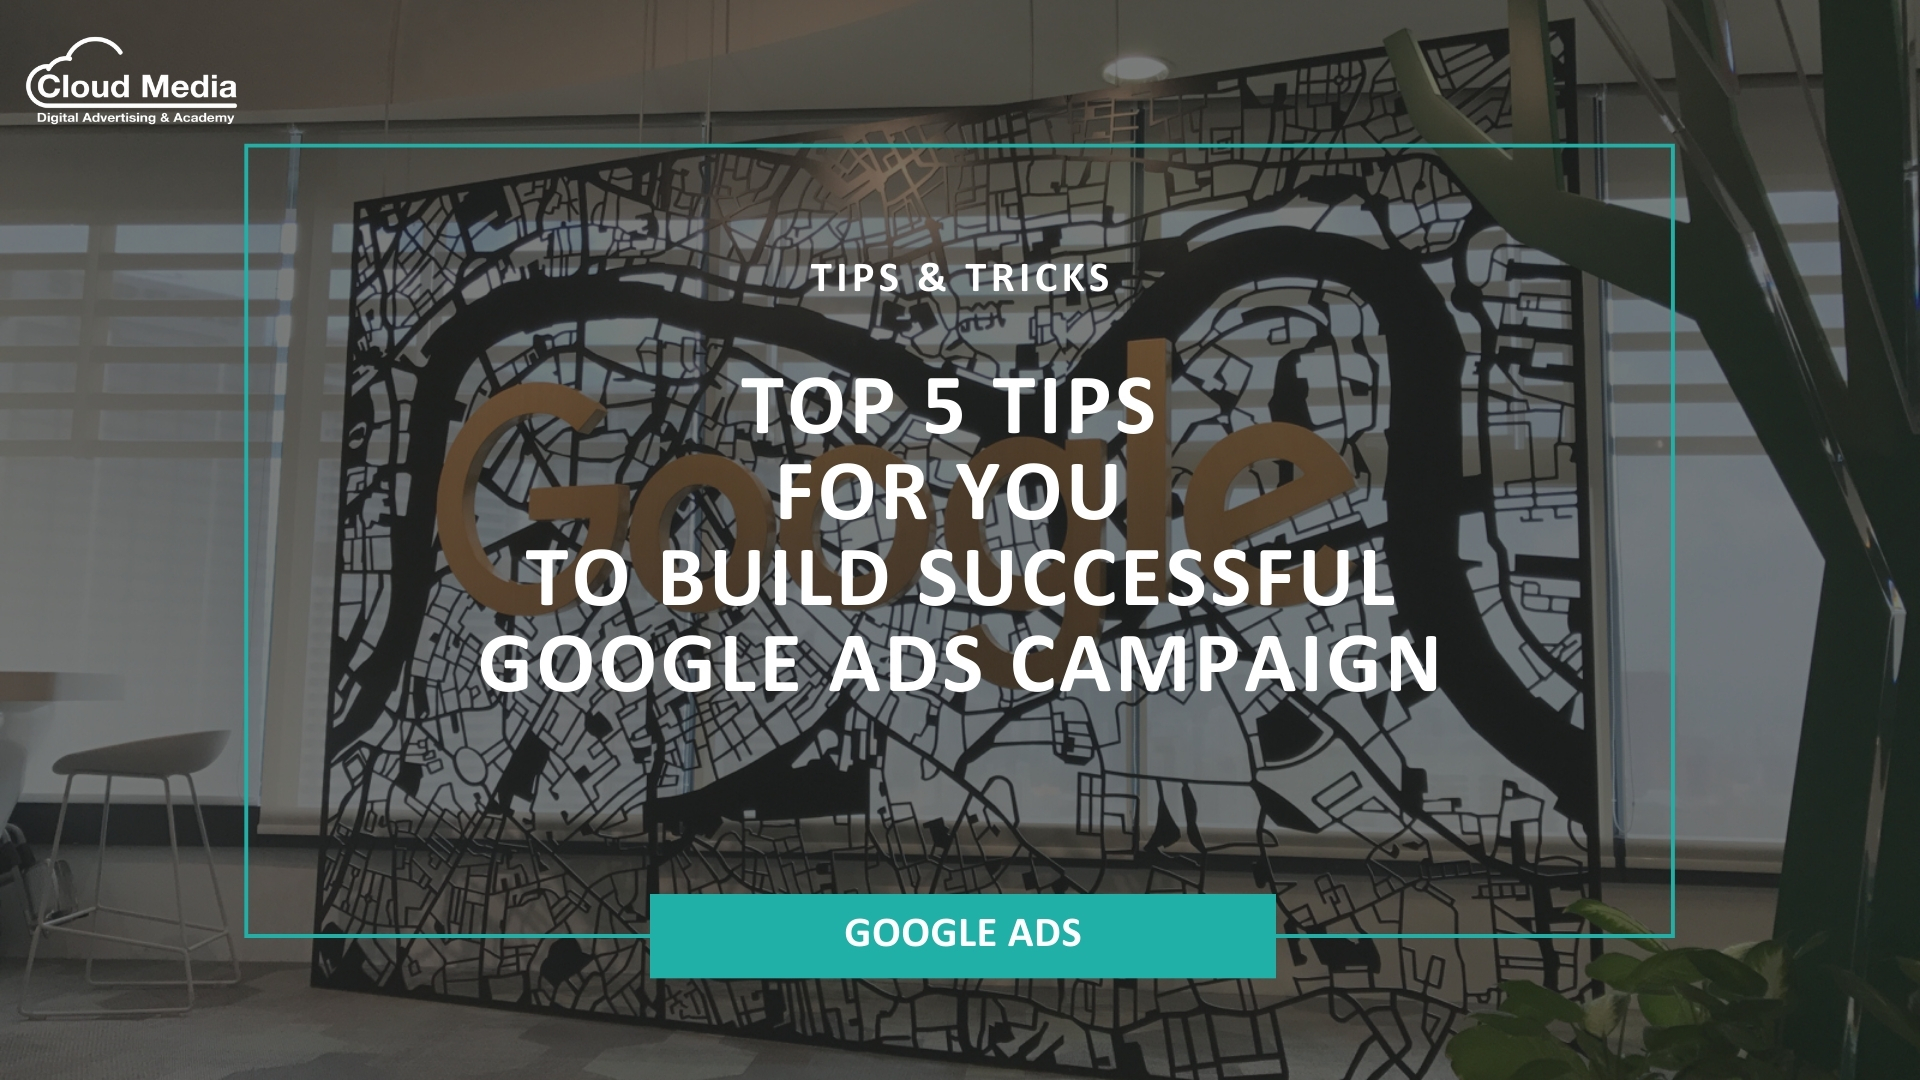 Top 5 Tips For You to Build Successful Google Ads Campaign